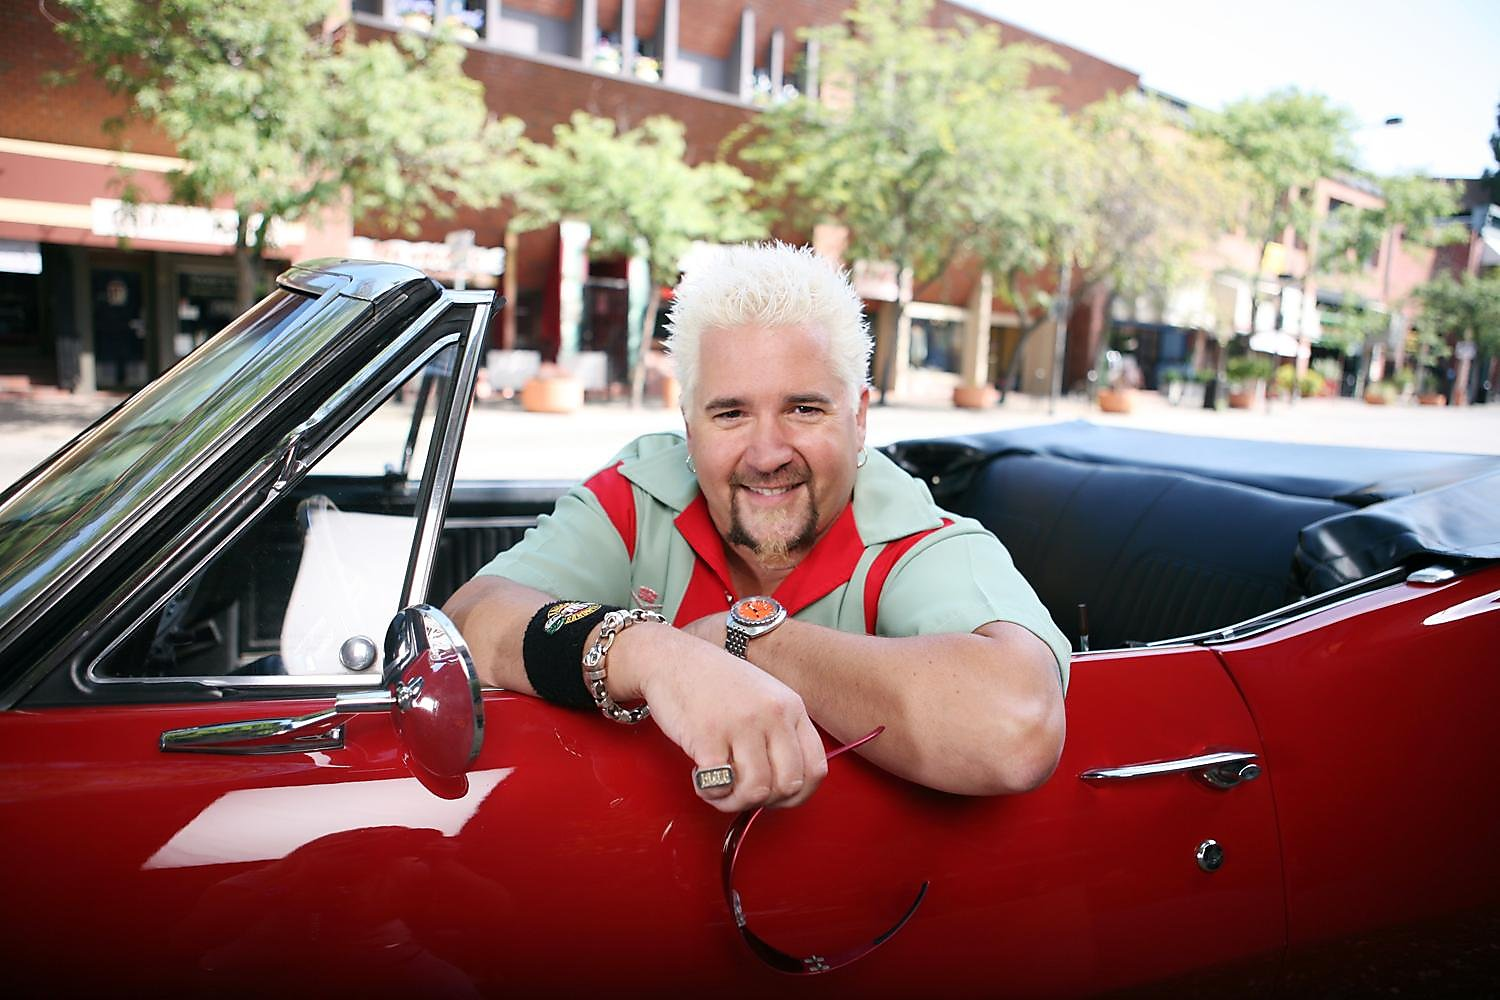 All the Bay Area restaurants Guy Fieri has visited on 'Diners, Drive-Ins and Dives'